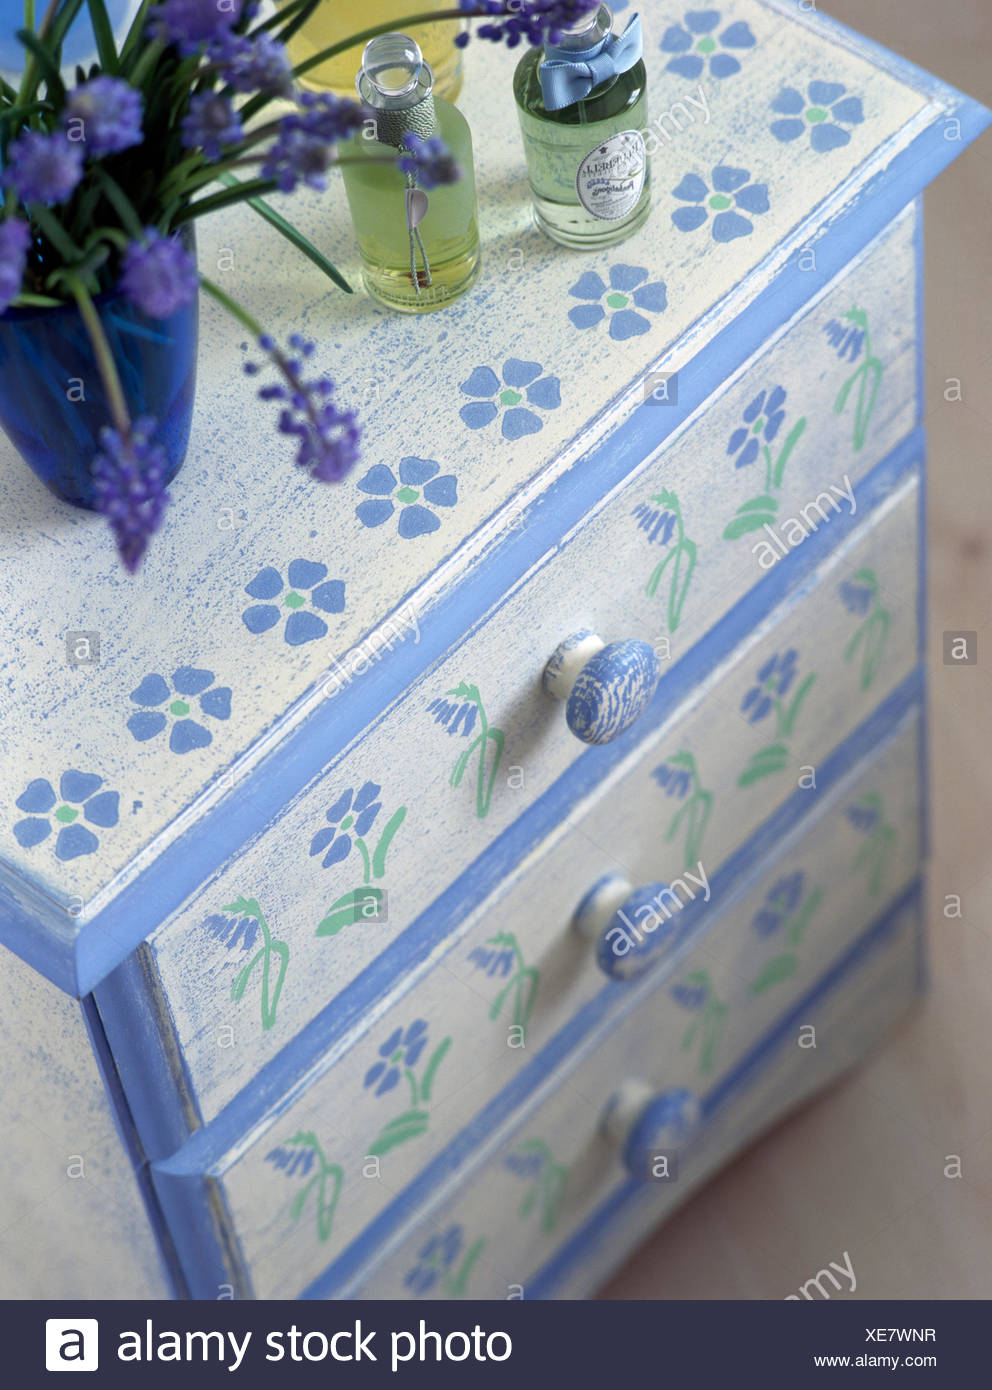 Close-up of a painted chest of drawers with a stenciled floral pattern - Stock Image